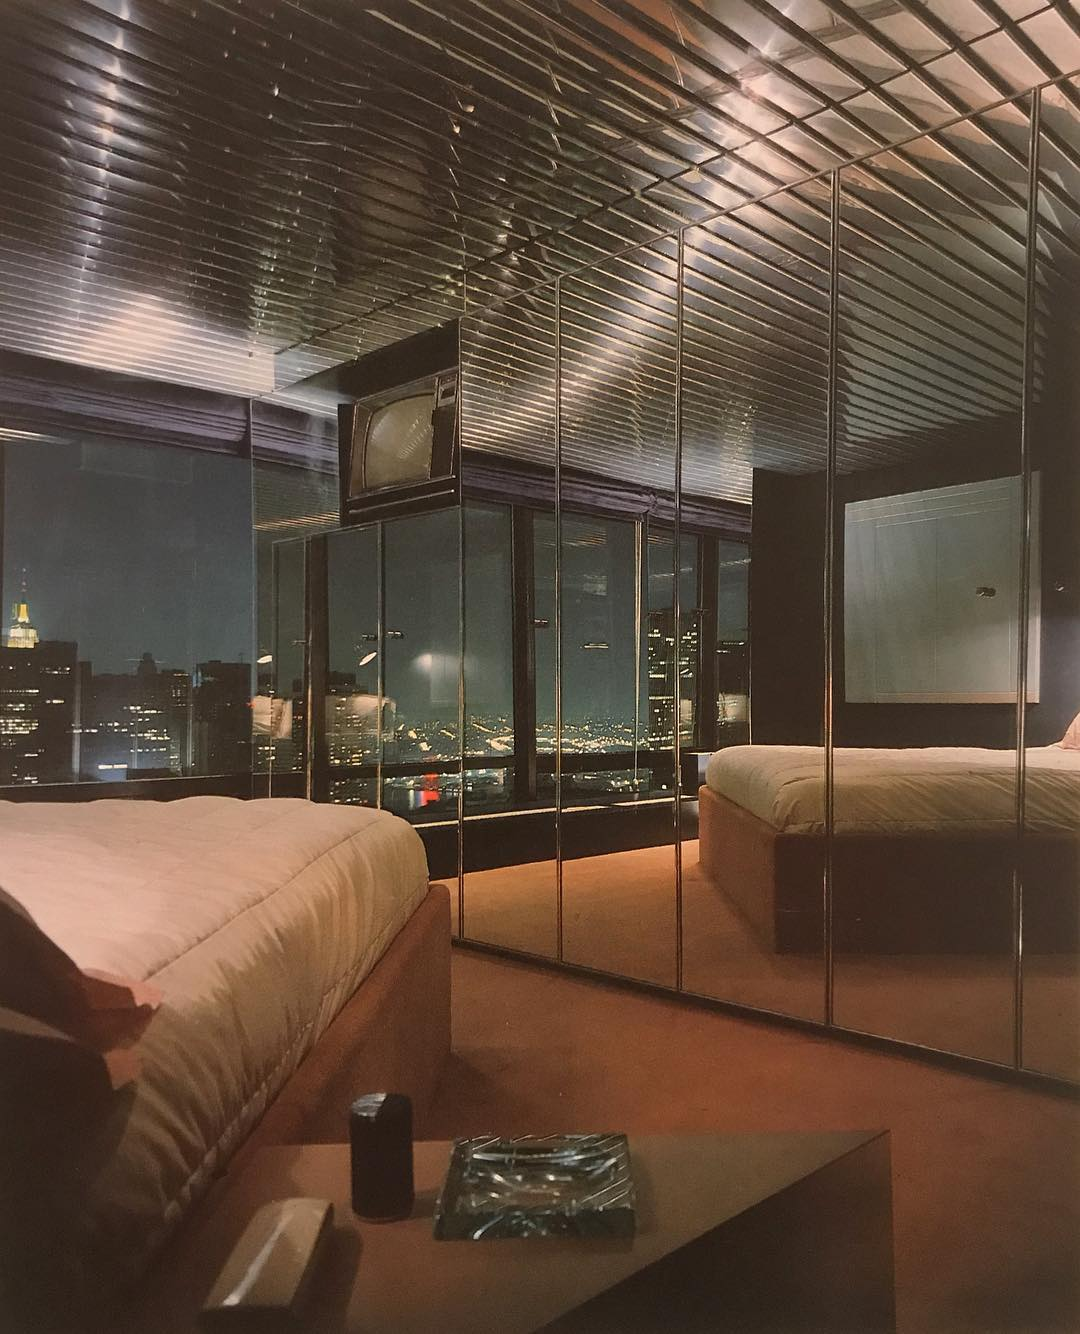 80s Gotham bedroom. | The Media Design Book - Philip Mazzurco 1984. Scanned by @the_80s_interior. | decor, interiors, aesthetic, design, inspiration, NYC, 80s, vintage, chic | Allegory of Vanity